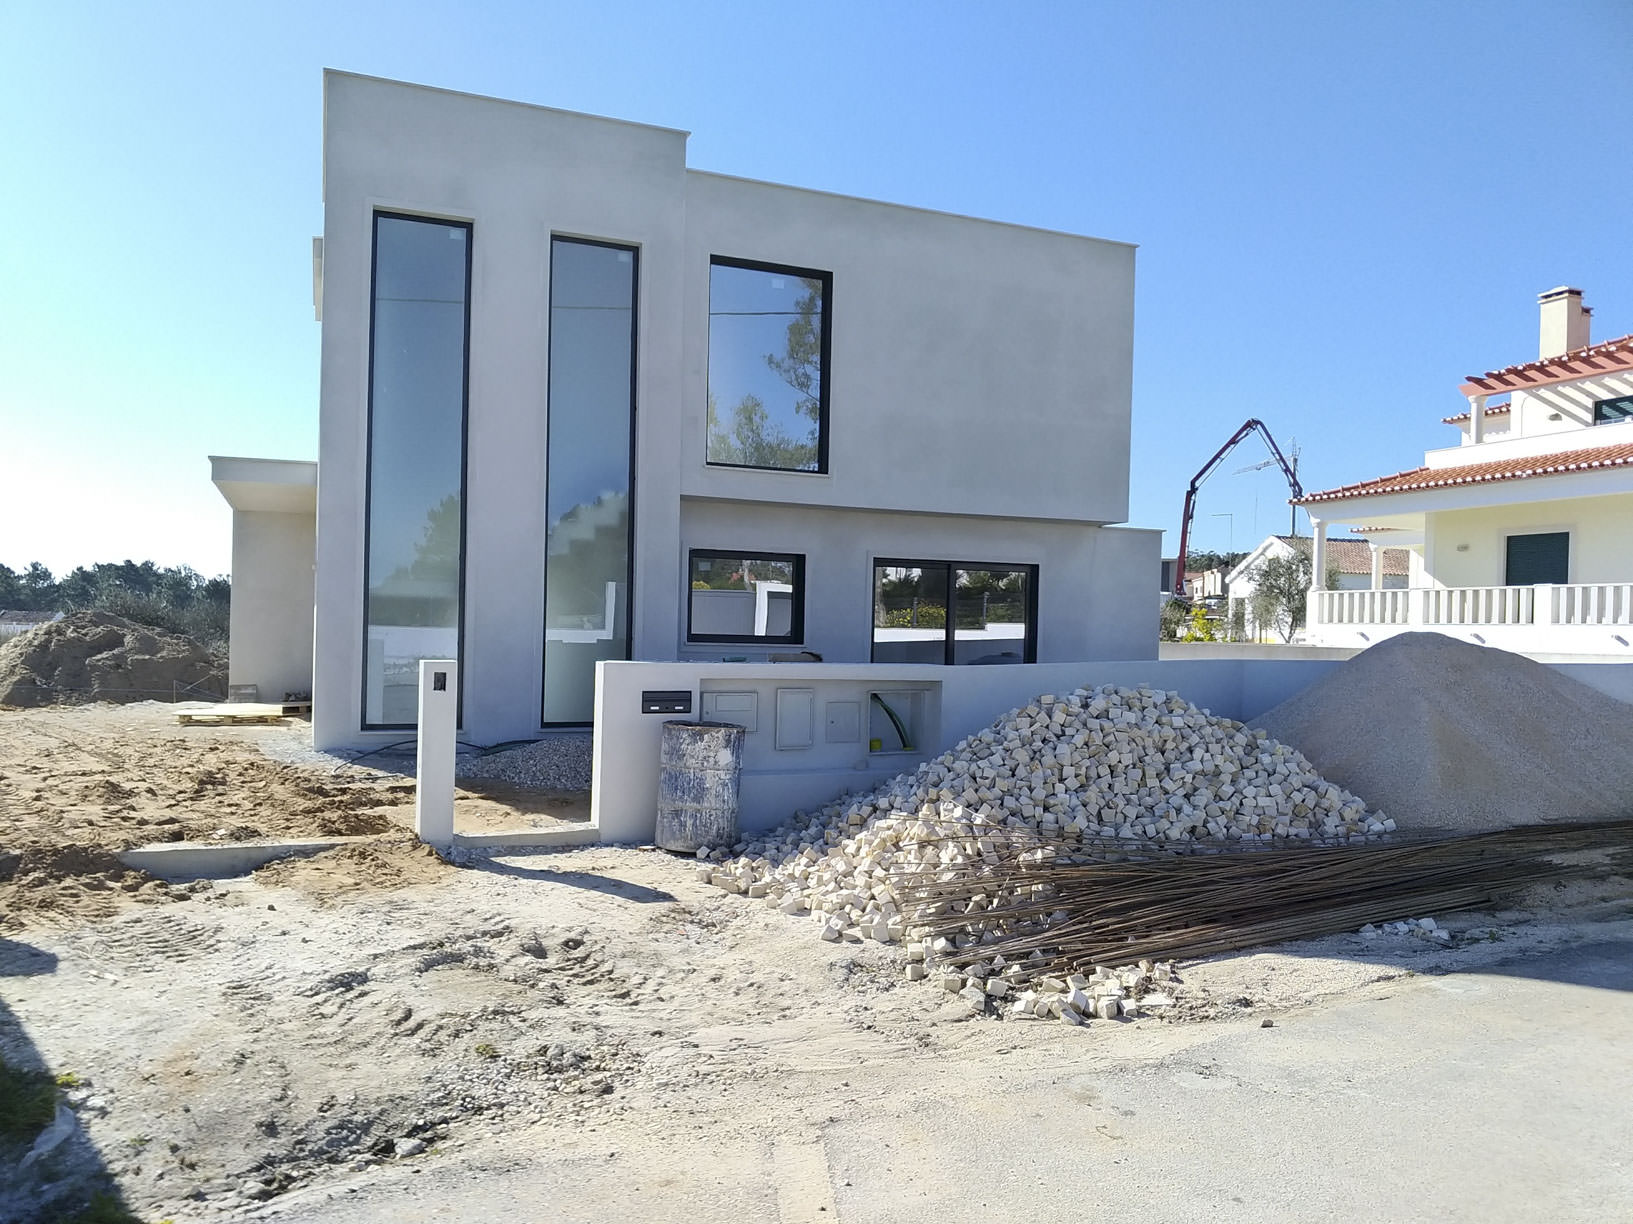 17-portugal-realty-silver-coast-property-for-sale-presprop-contsruction-new-build